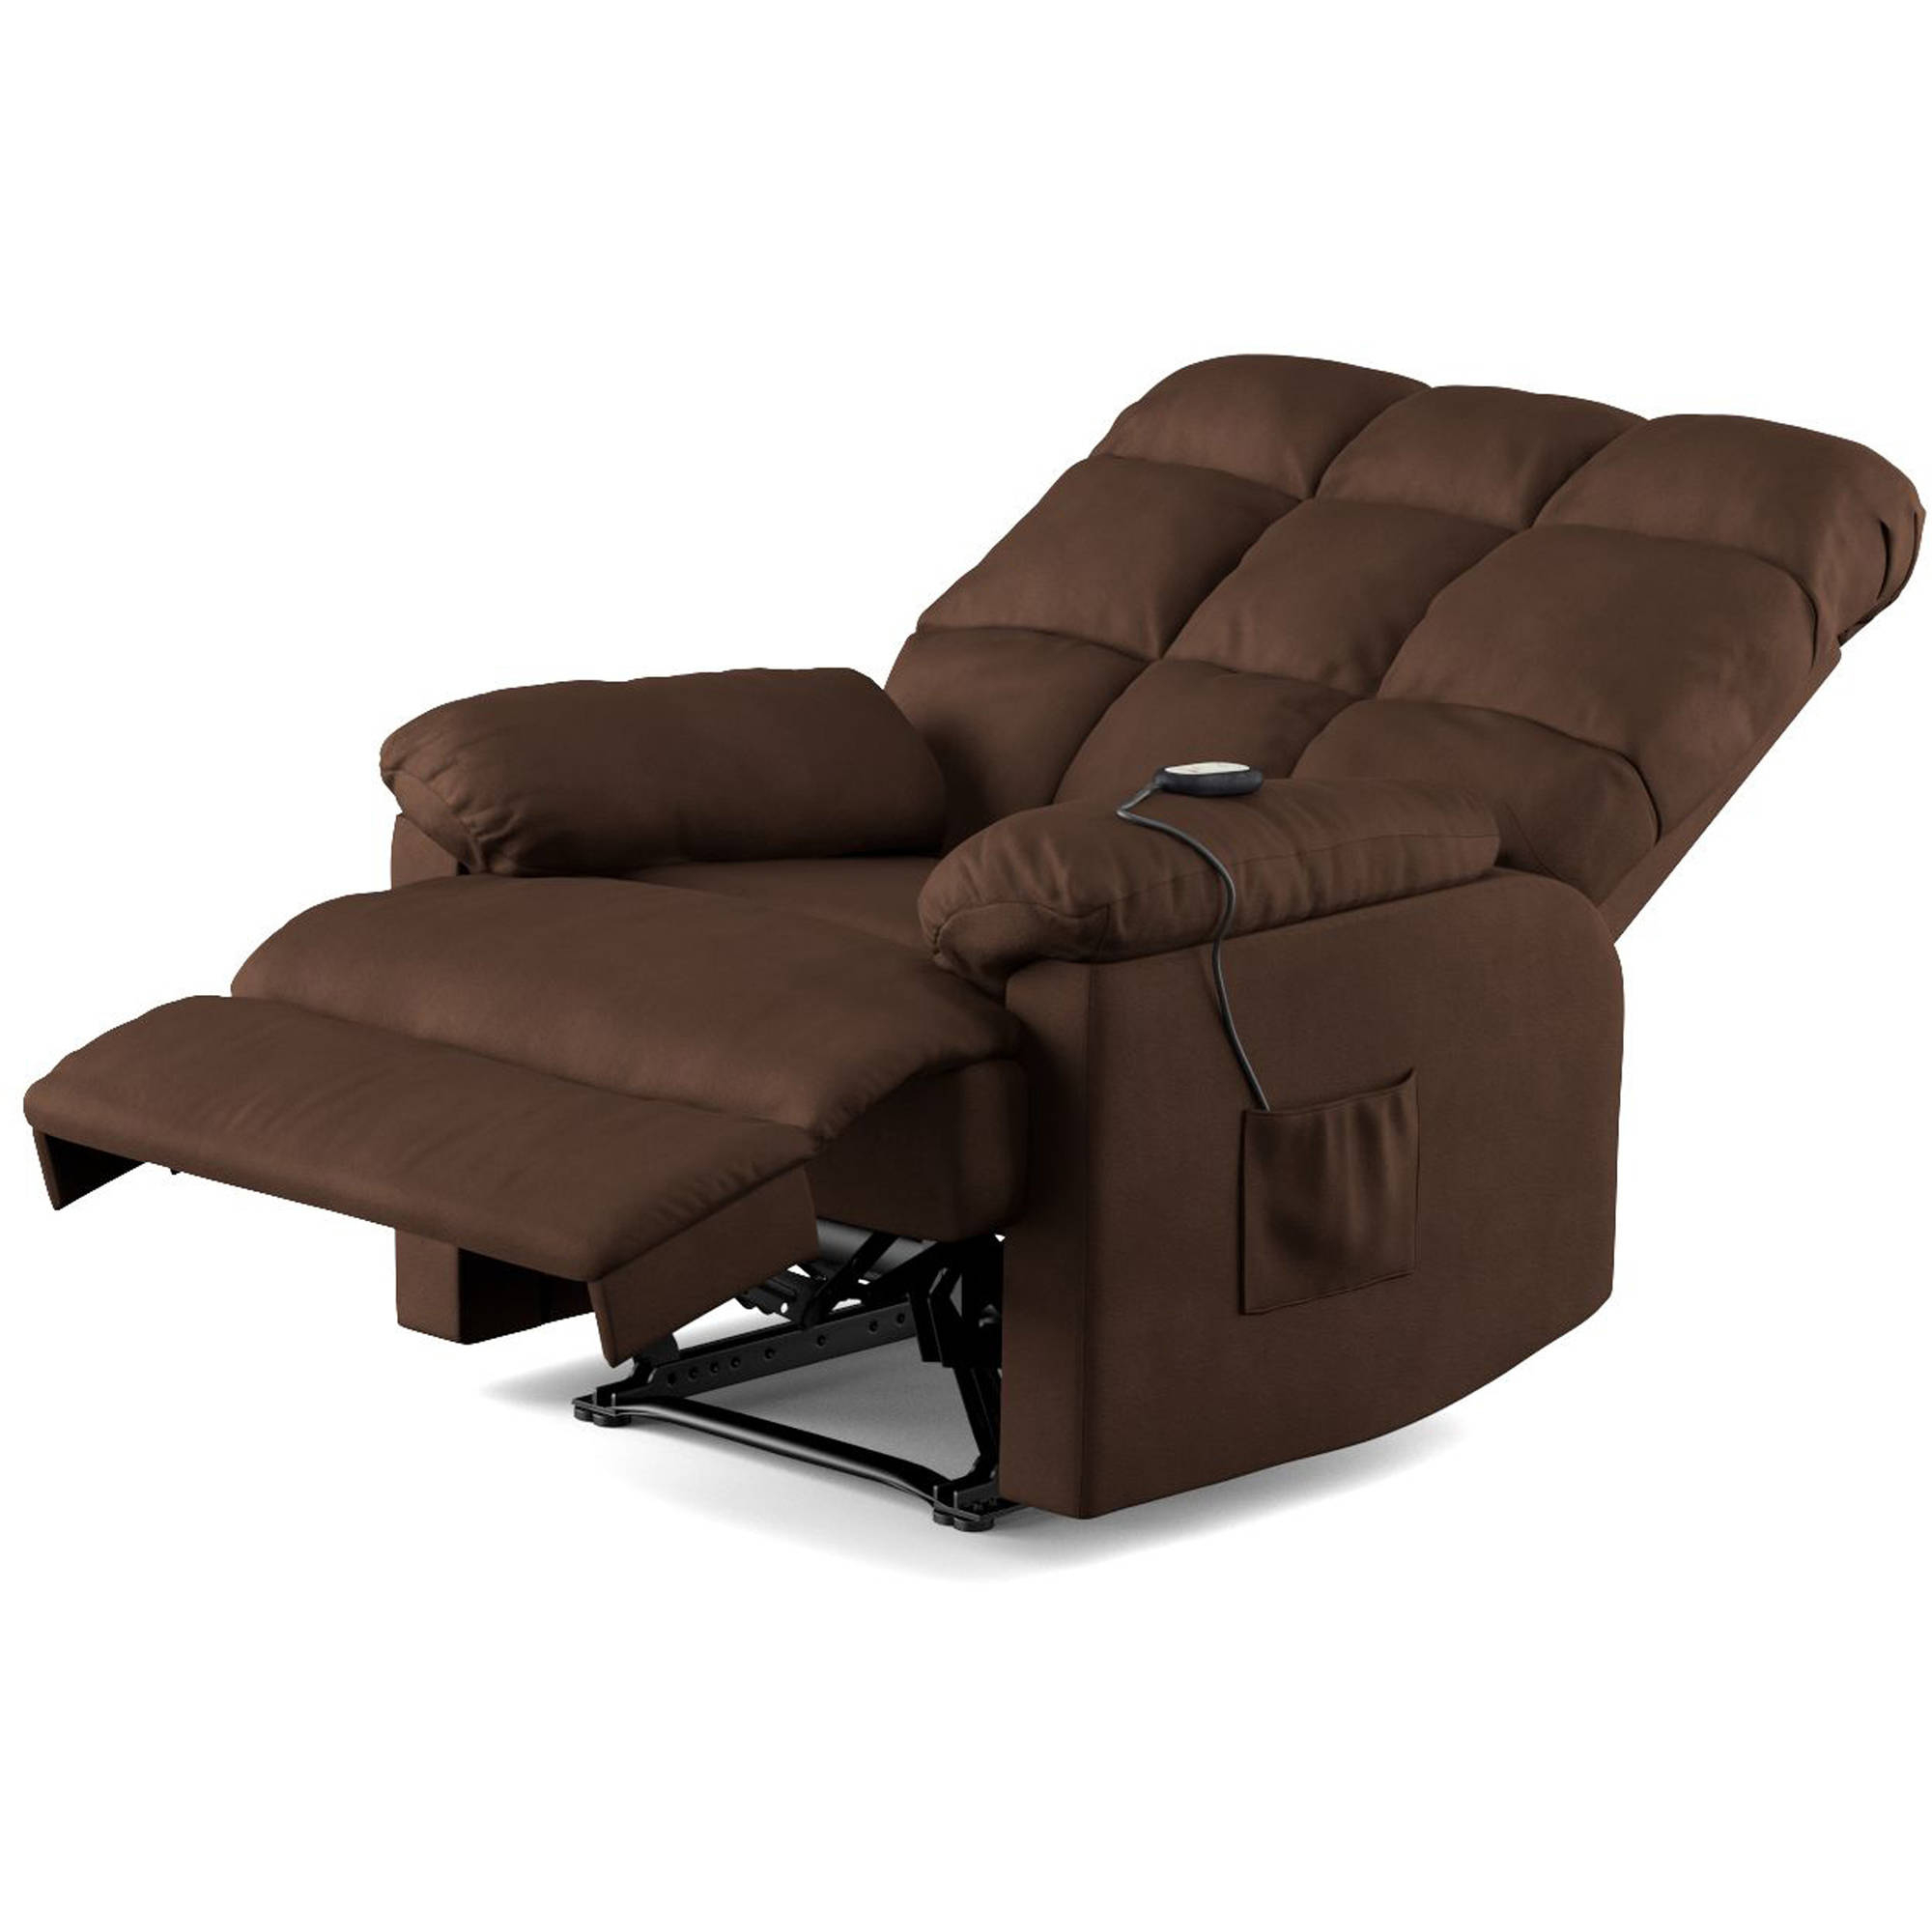 Extra Wide Recliner Lounge Chairs In 2020 Furniture: Best Extra Wide Recliner For Your Ultimate (View 5 of 25)